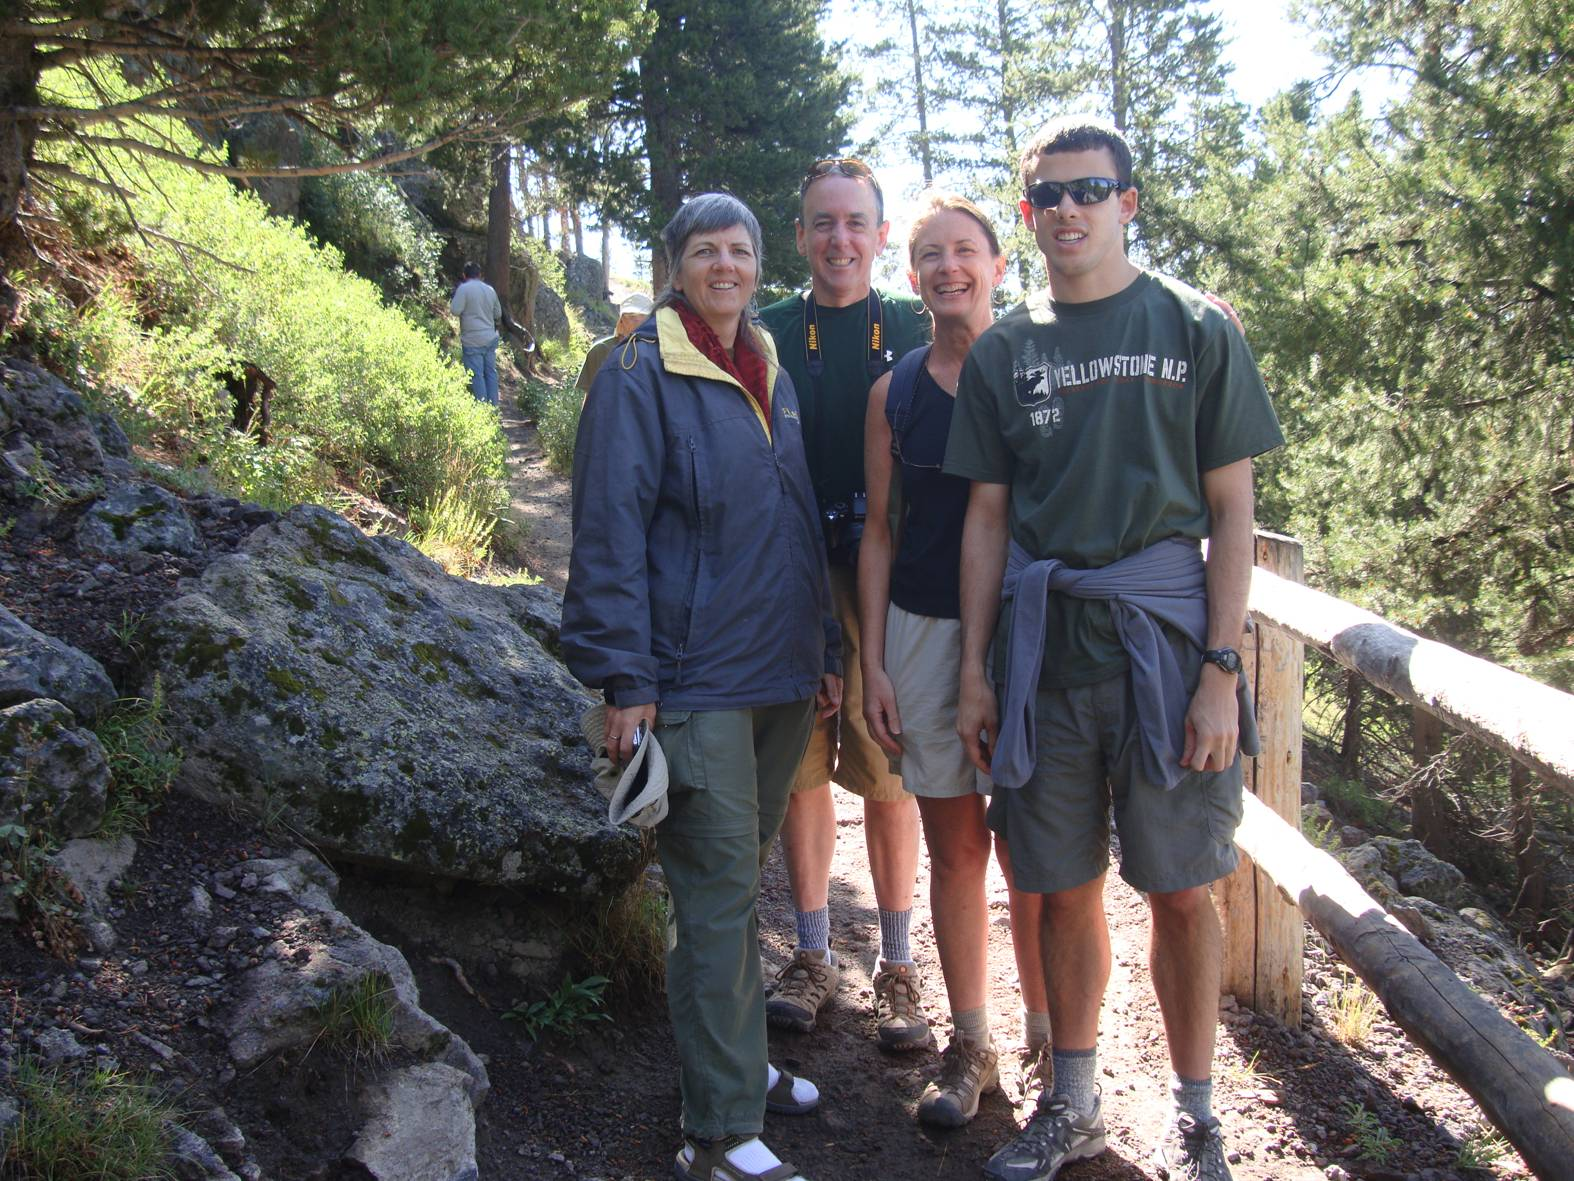 Picture: A family from... Louisiana?  Yellowstone trail to observation point.